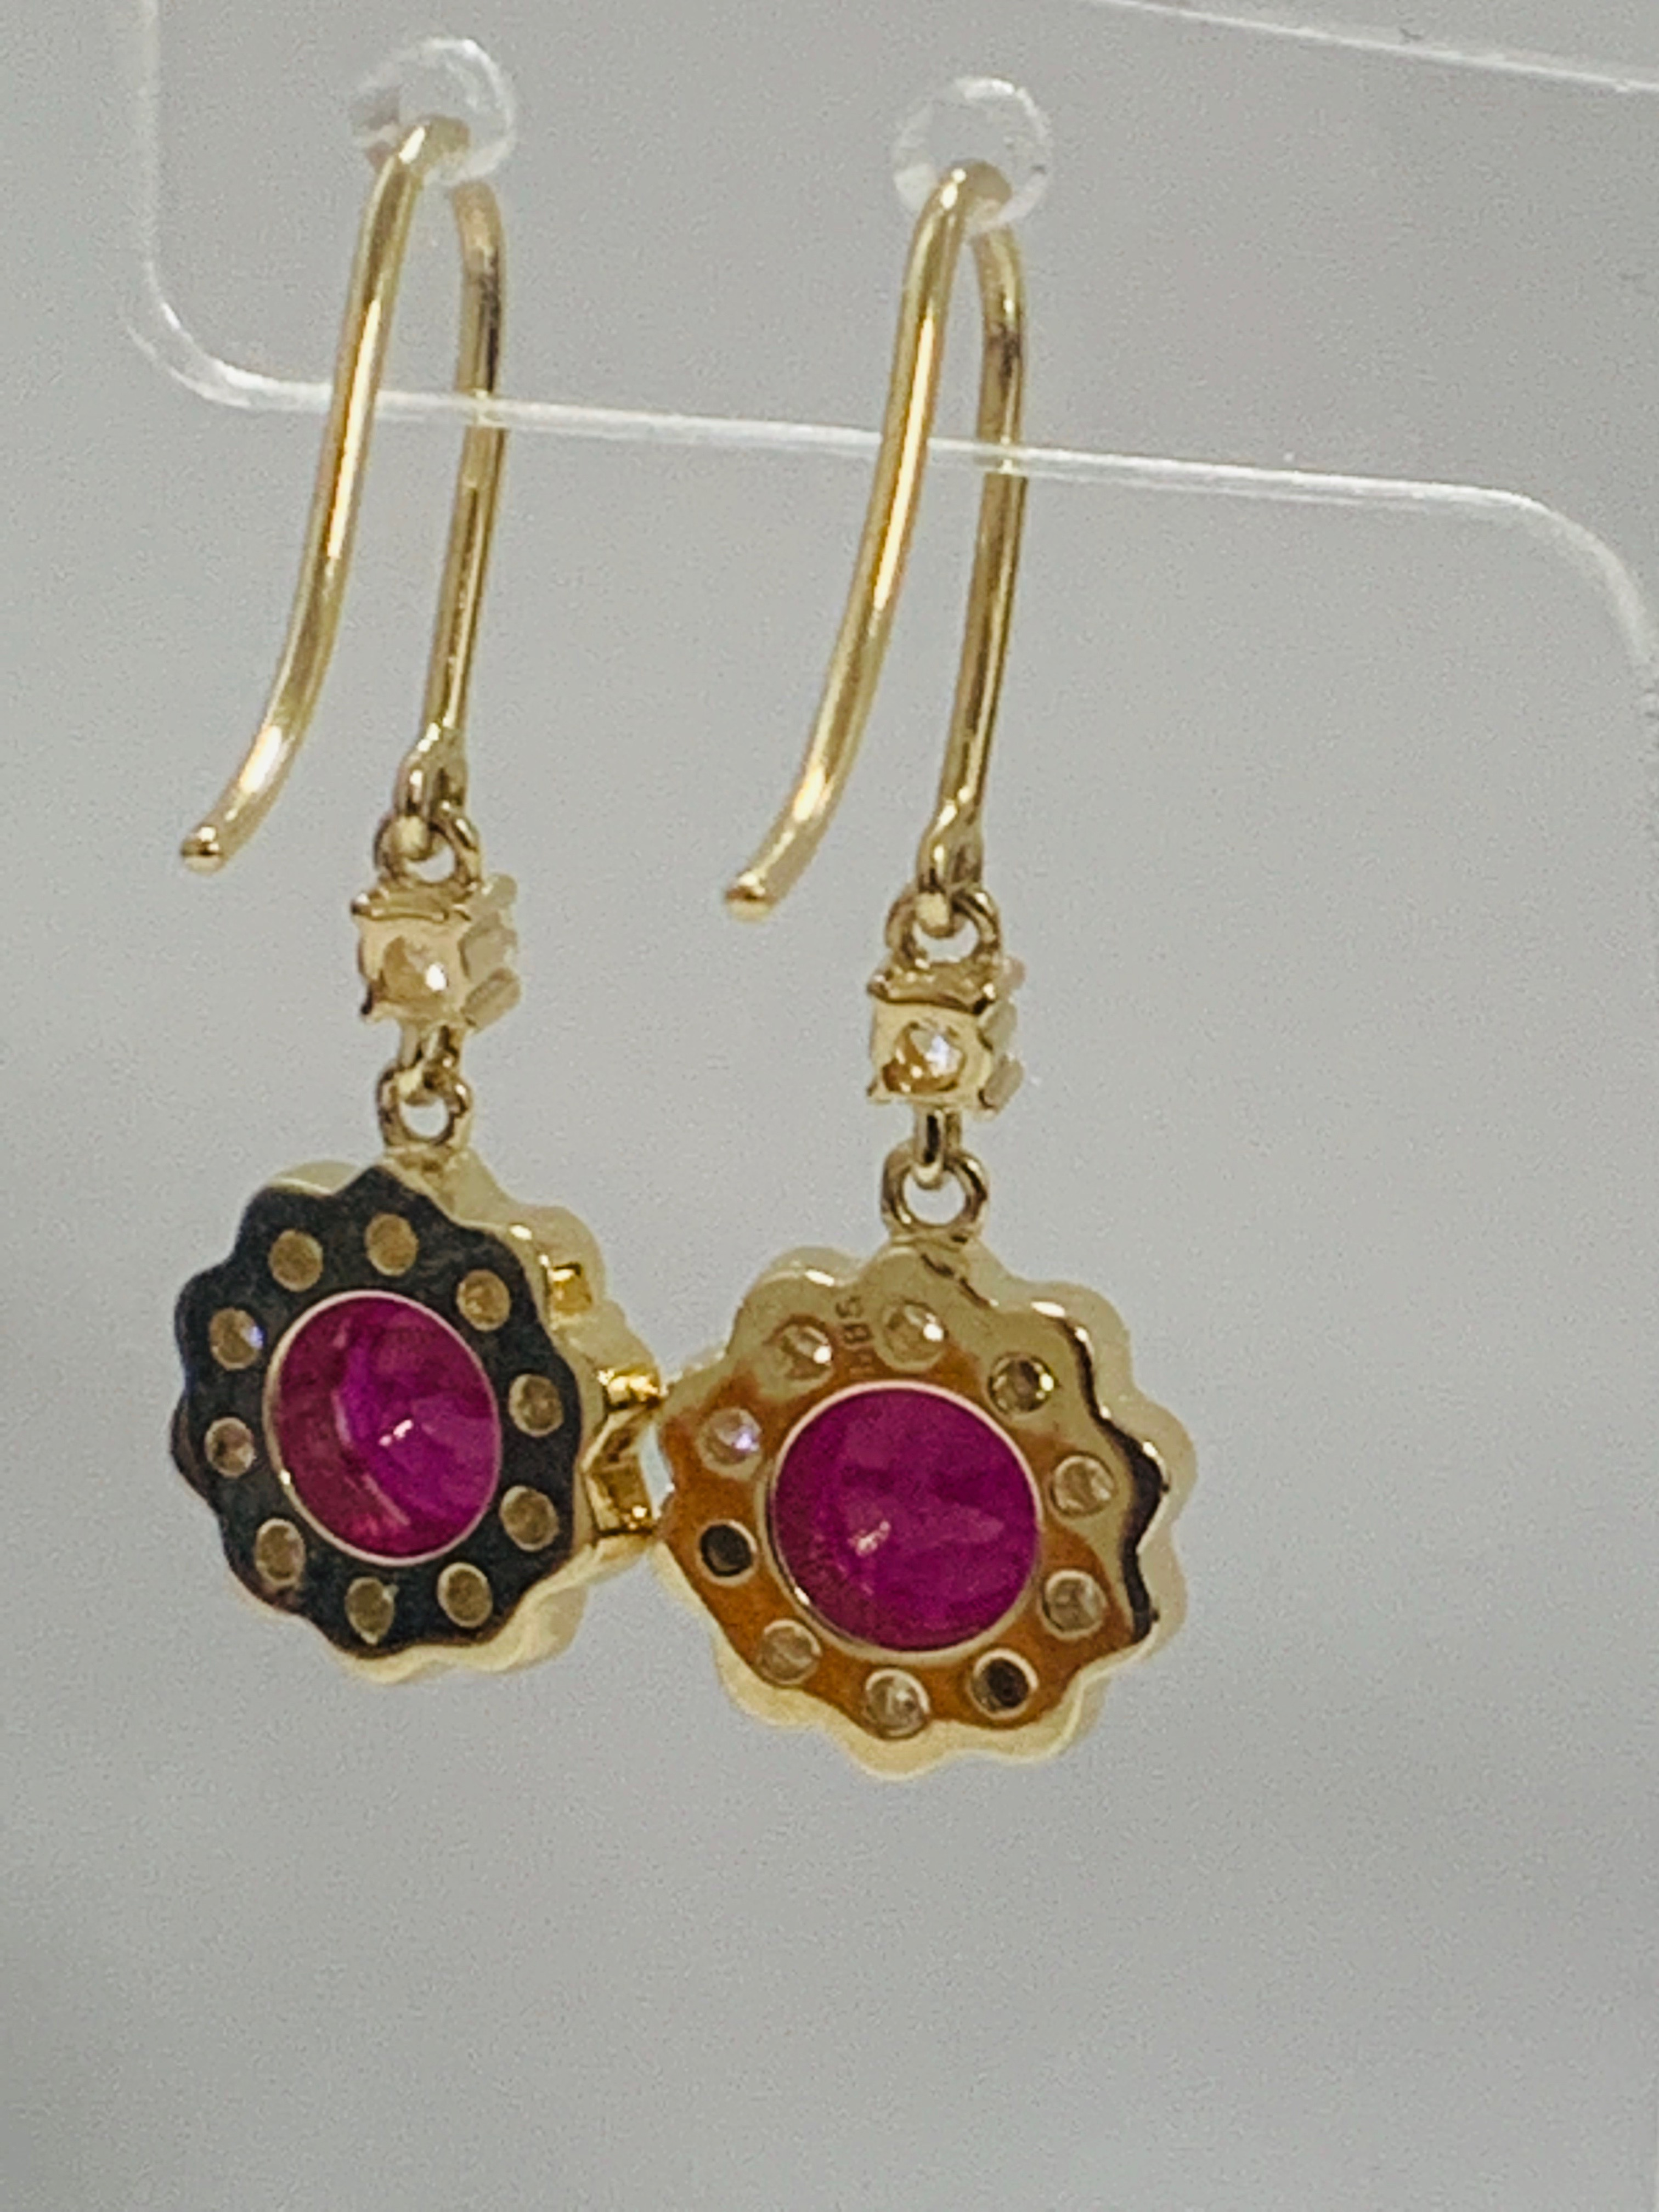 14ct Yellow Gold Ruby and Diamond earrings featuring, 2 round cut, red Rubies (2.22ct TSW) - Image 6 of 8